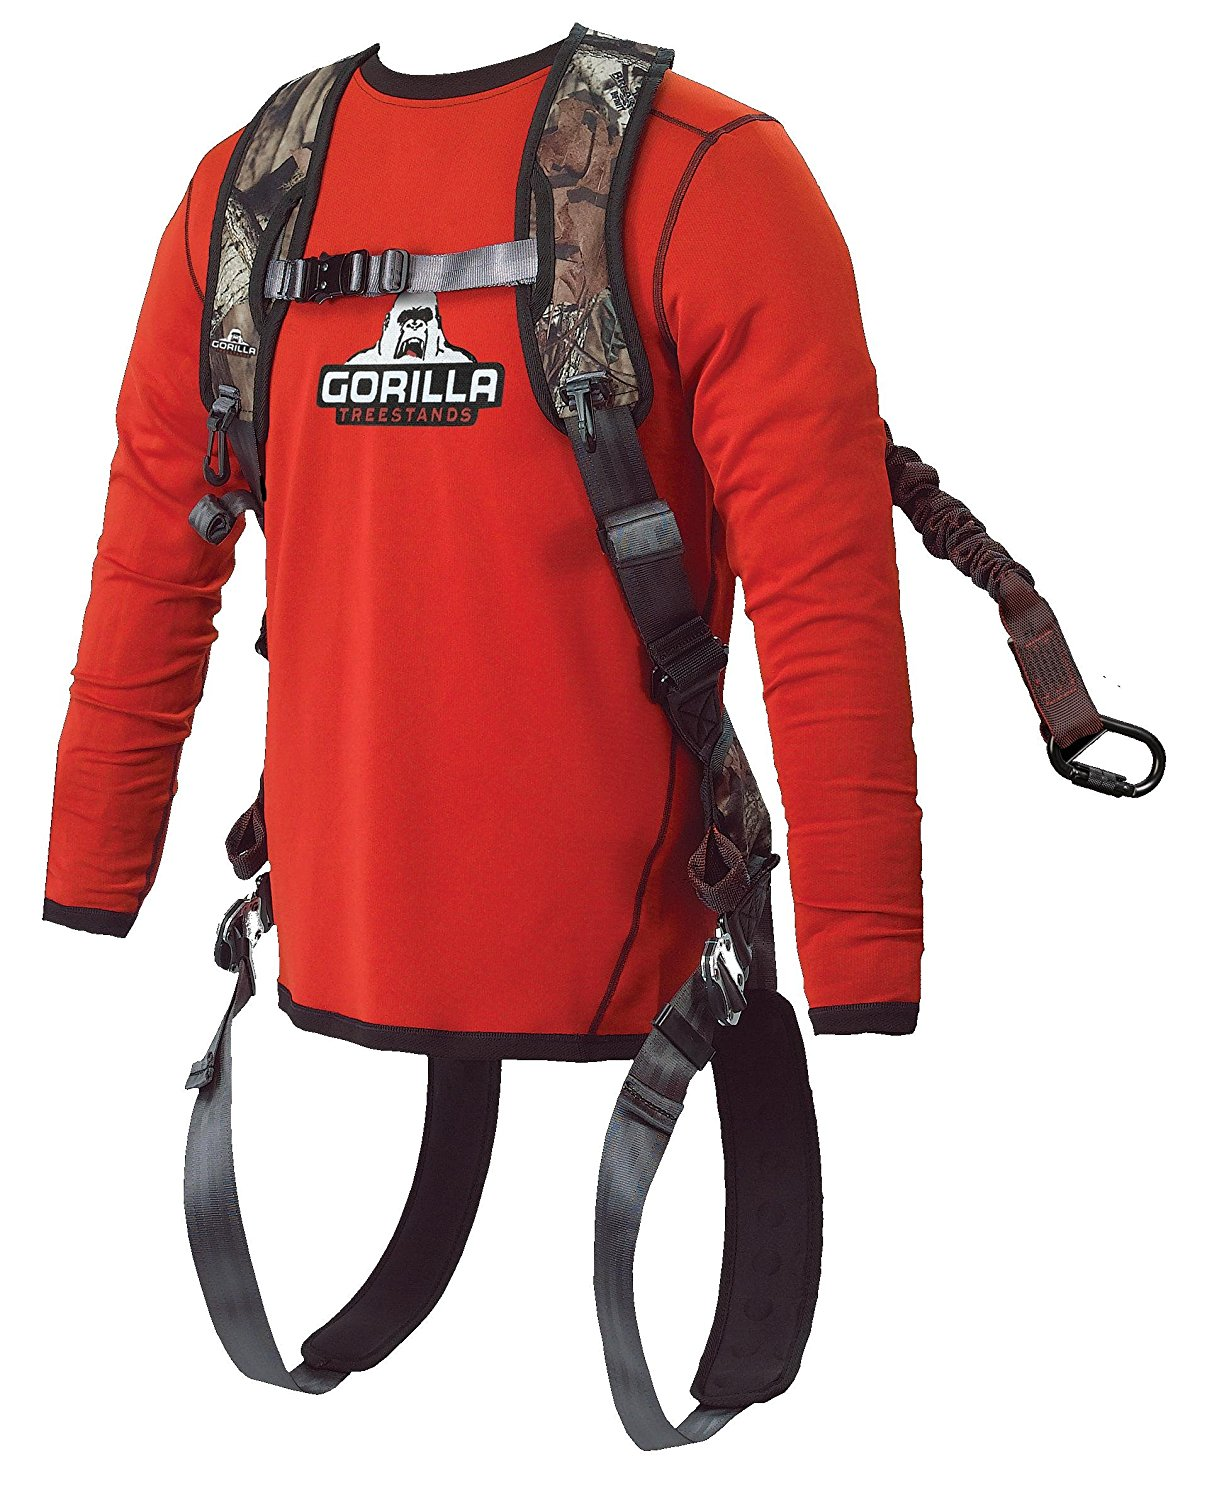 HTB1Dd0RgCMmBKNjSZTEq6ysKpXaN cheap best safety harness, find best safety harness deals on line at